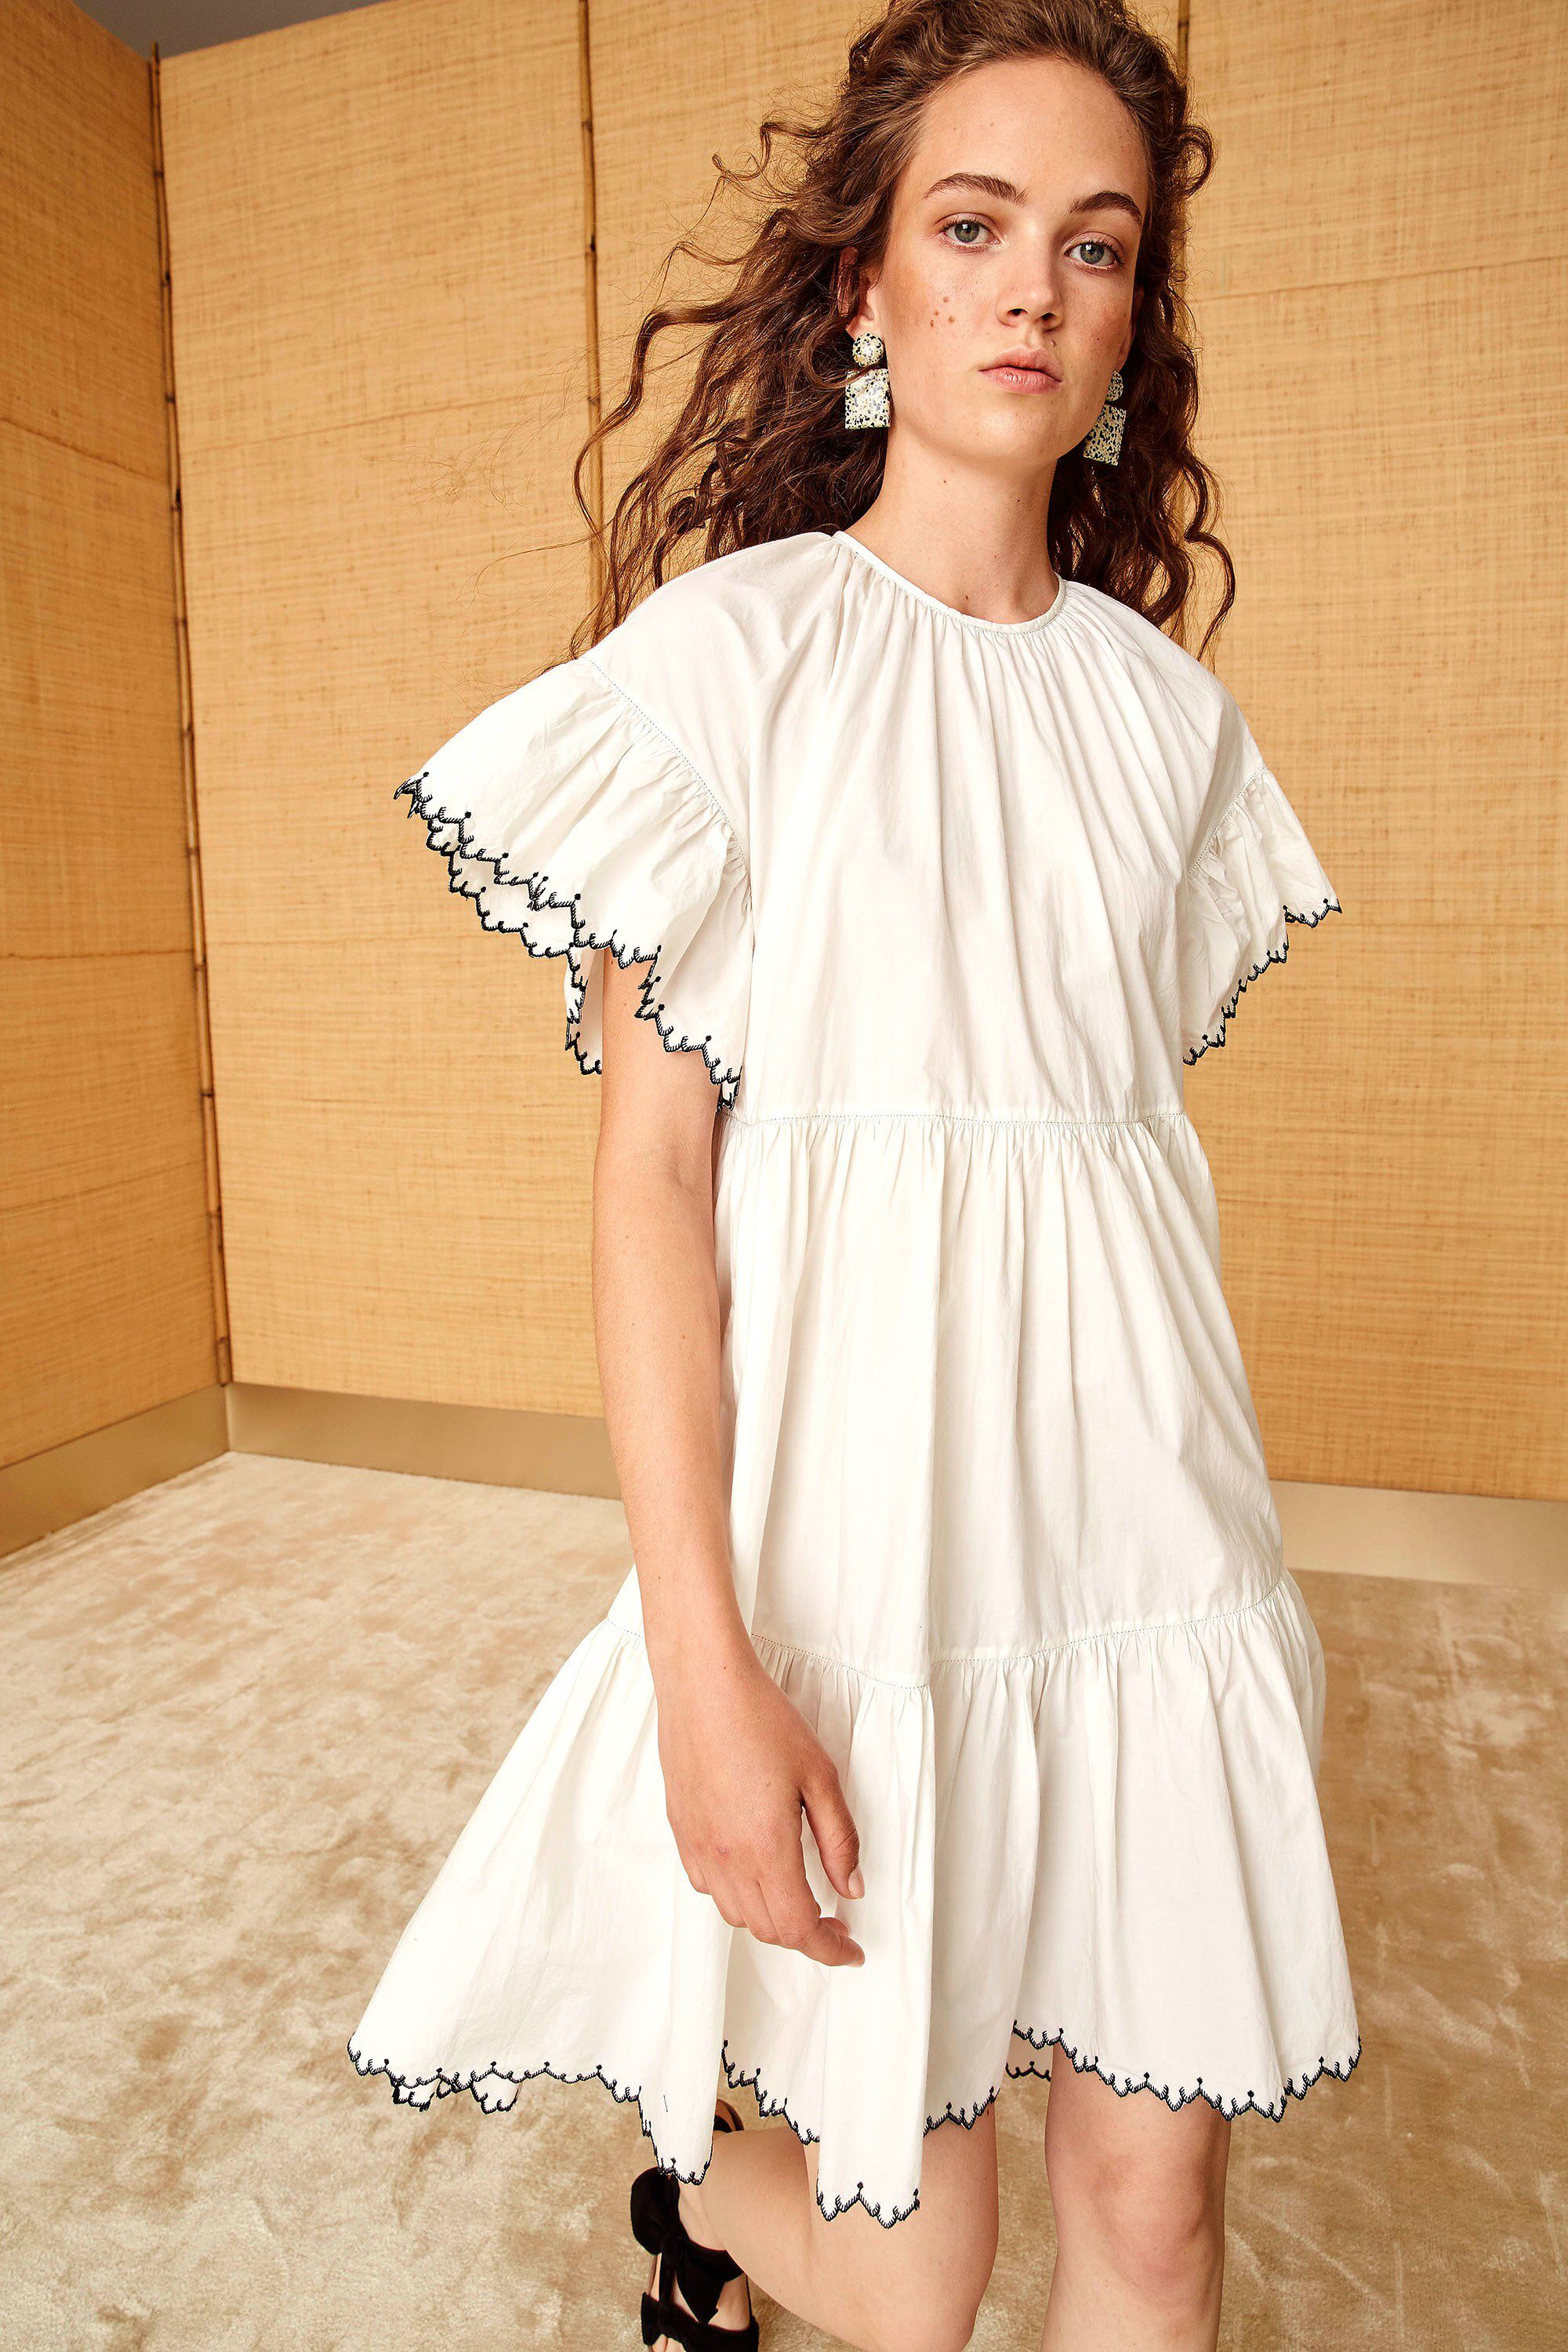 Ulla johnson resort fashion show ulla johnson resorts and